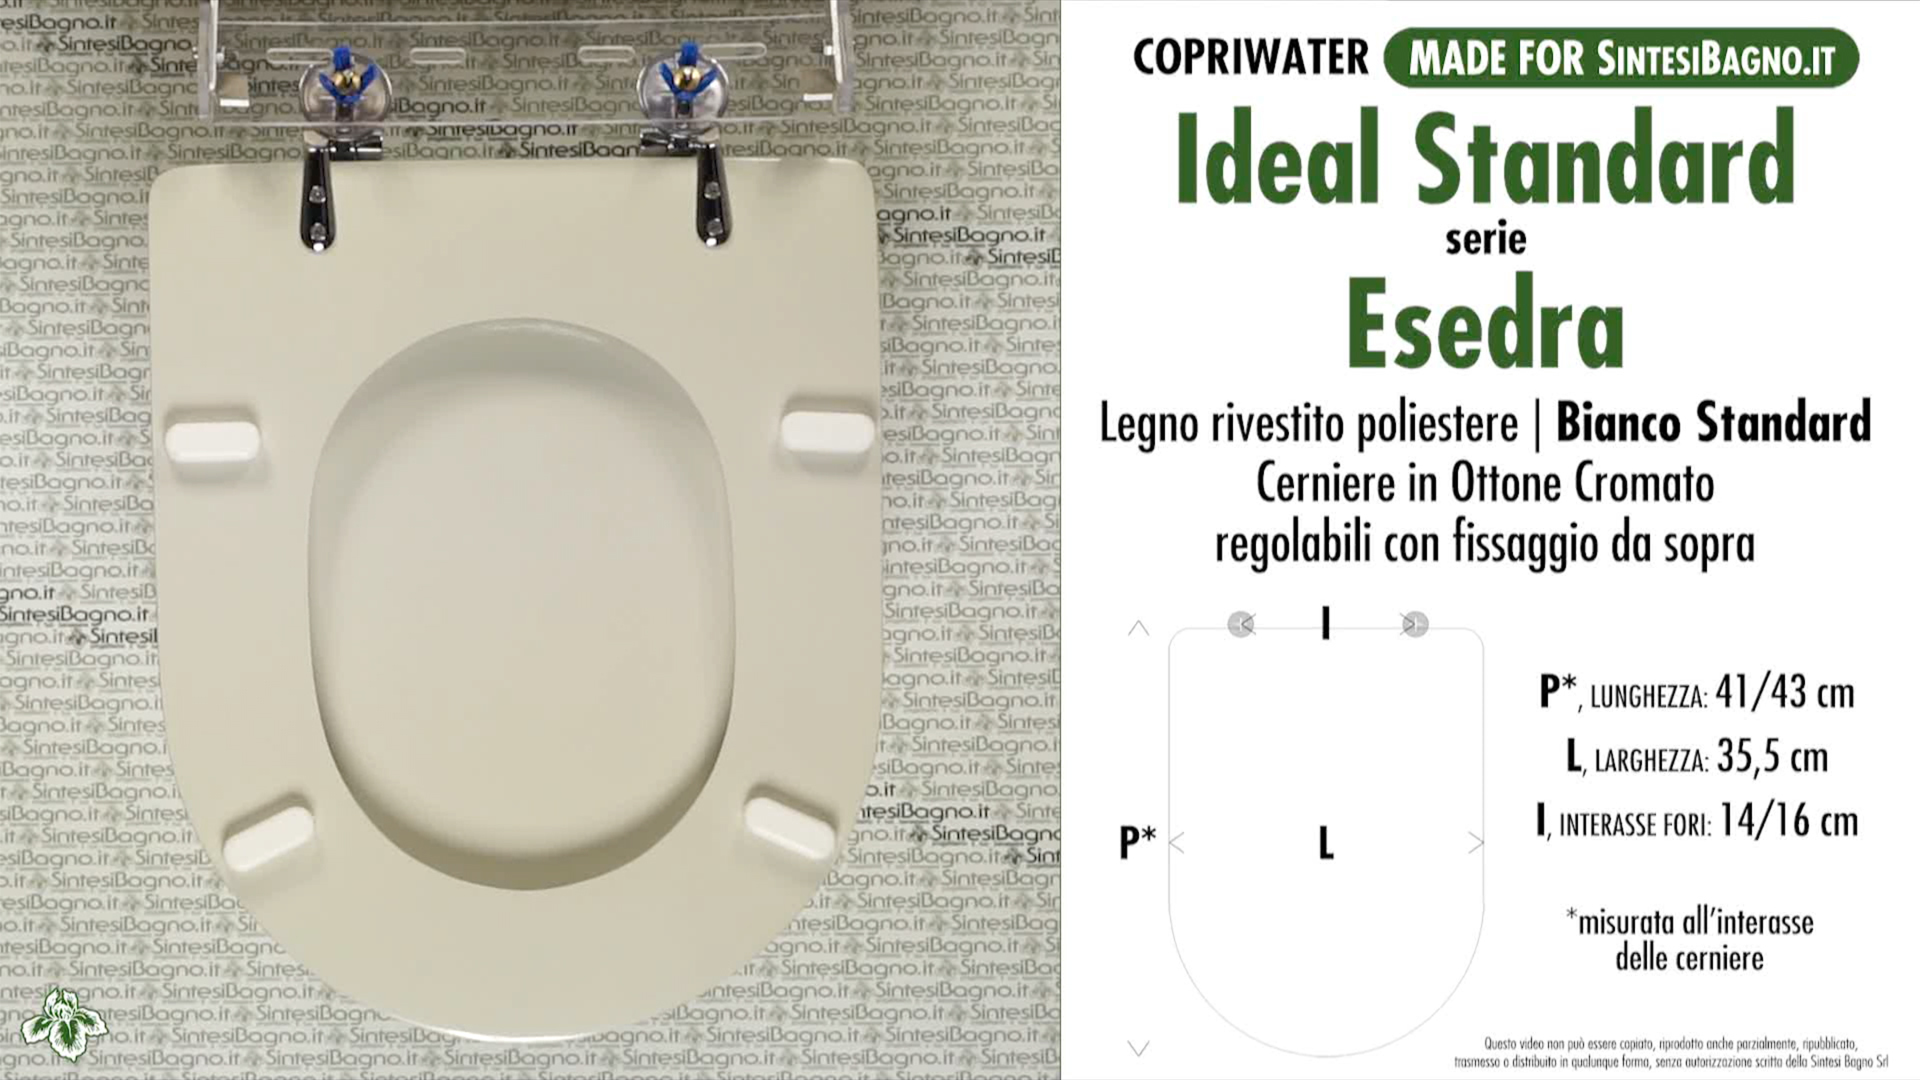 Copriwater per wc esedra ideal standard bianco standard for Serie esedra ideal standard